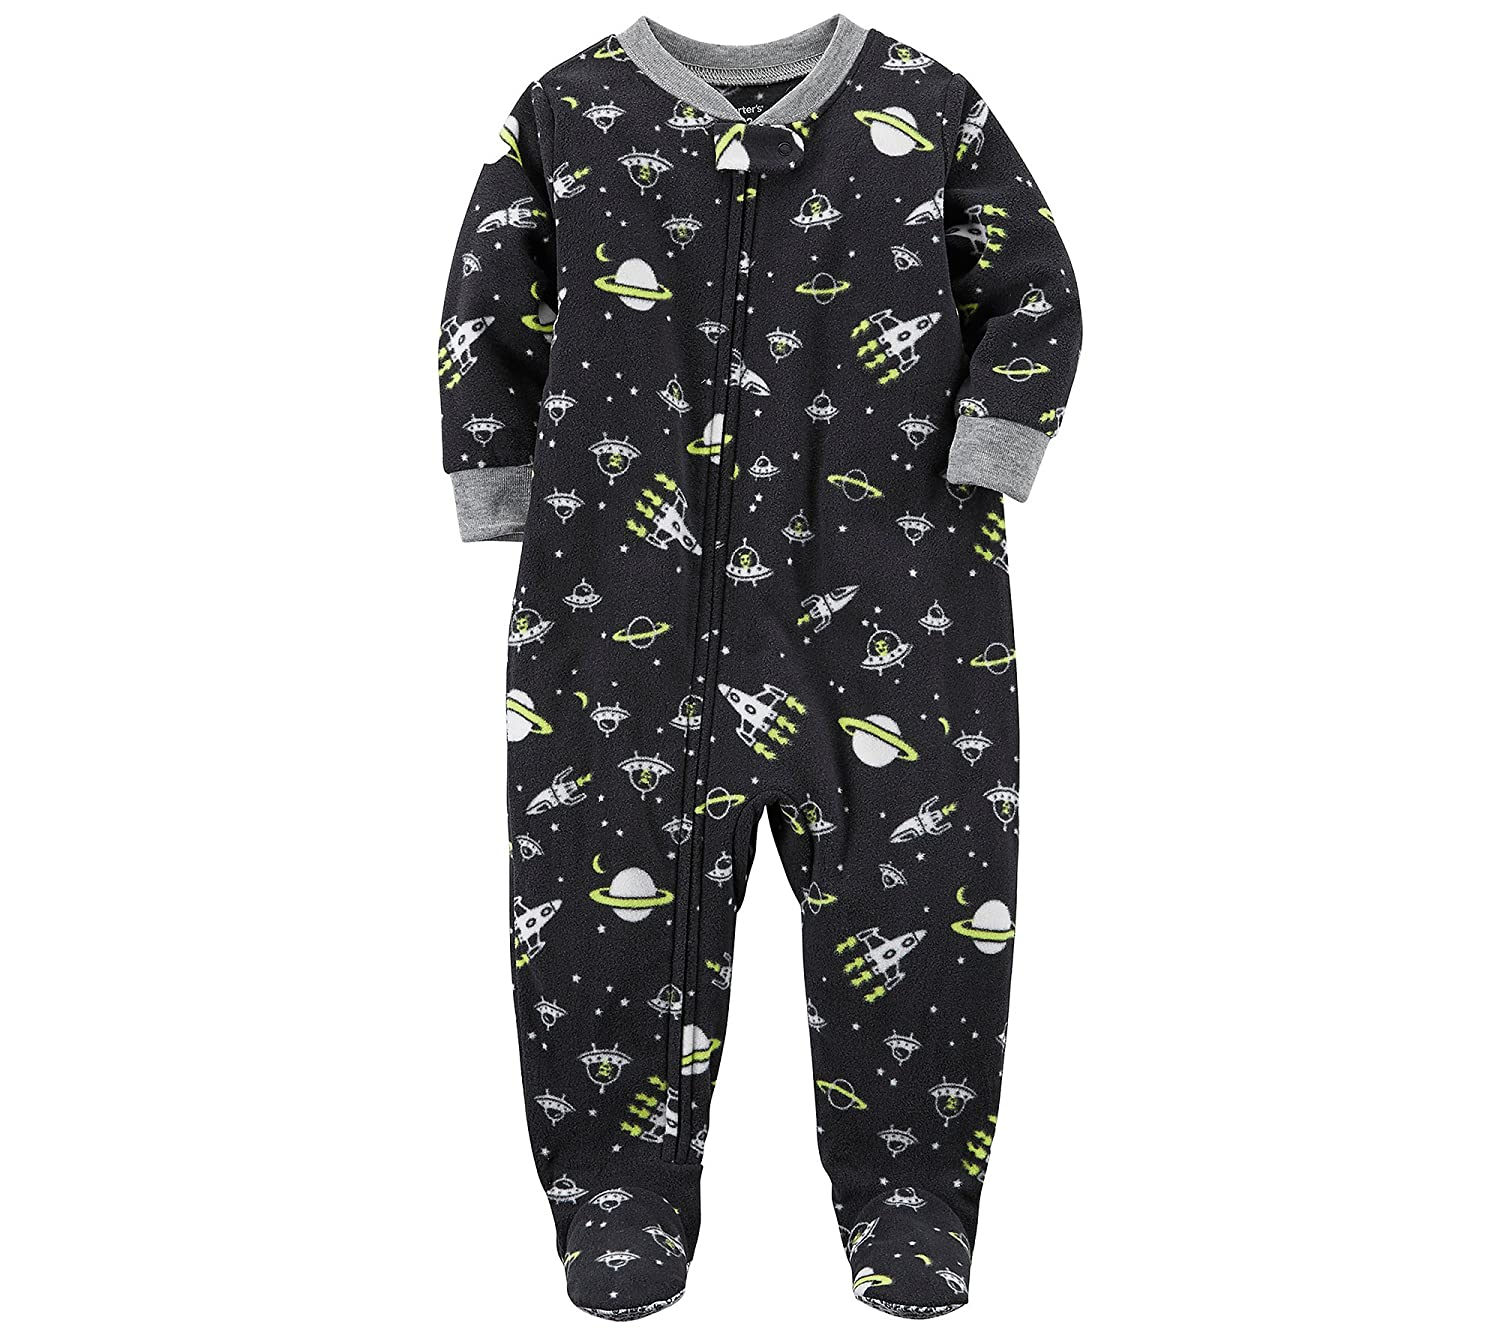 7b24d7dac Amazon.com  Carter s Baby Boys  1 Pc Fleece 327g144  Clothing